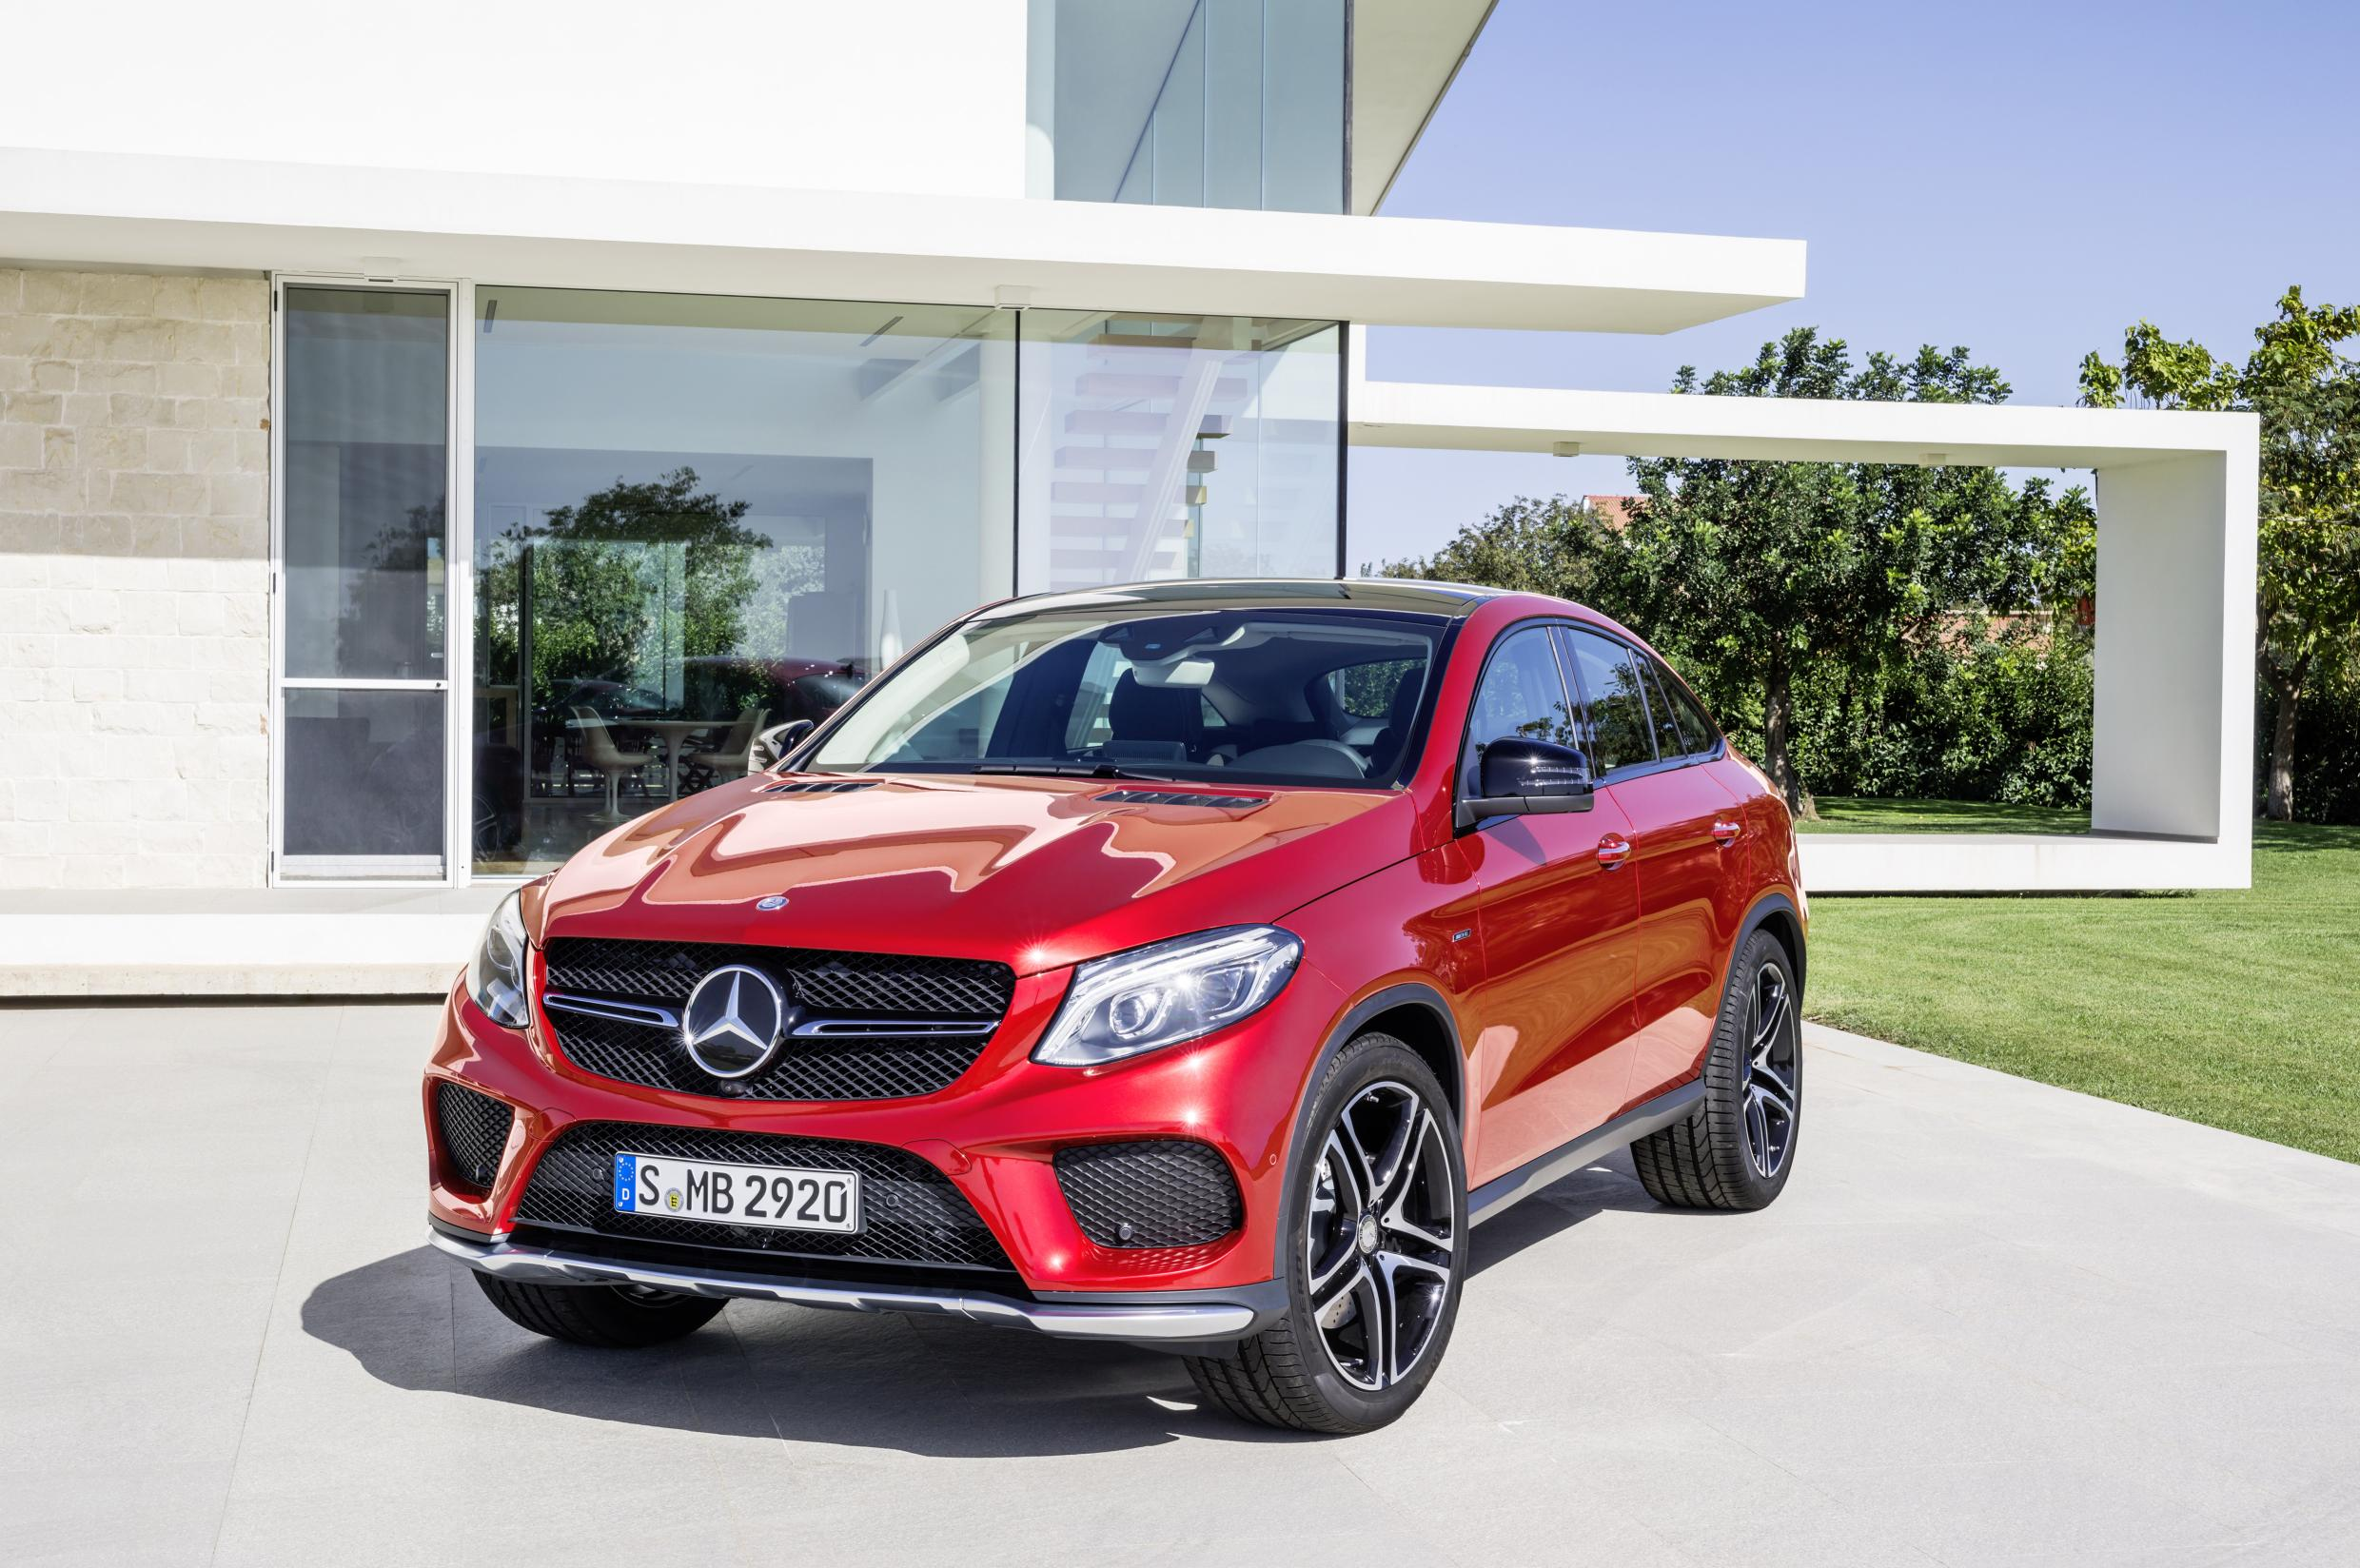 The Mercedes-Benz GLE 450 AMG Coupé - New Mercedes GLE fuses coupé and crossover